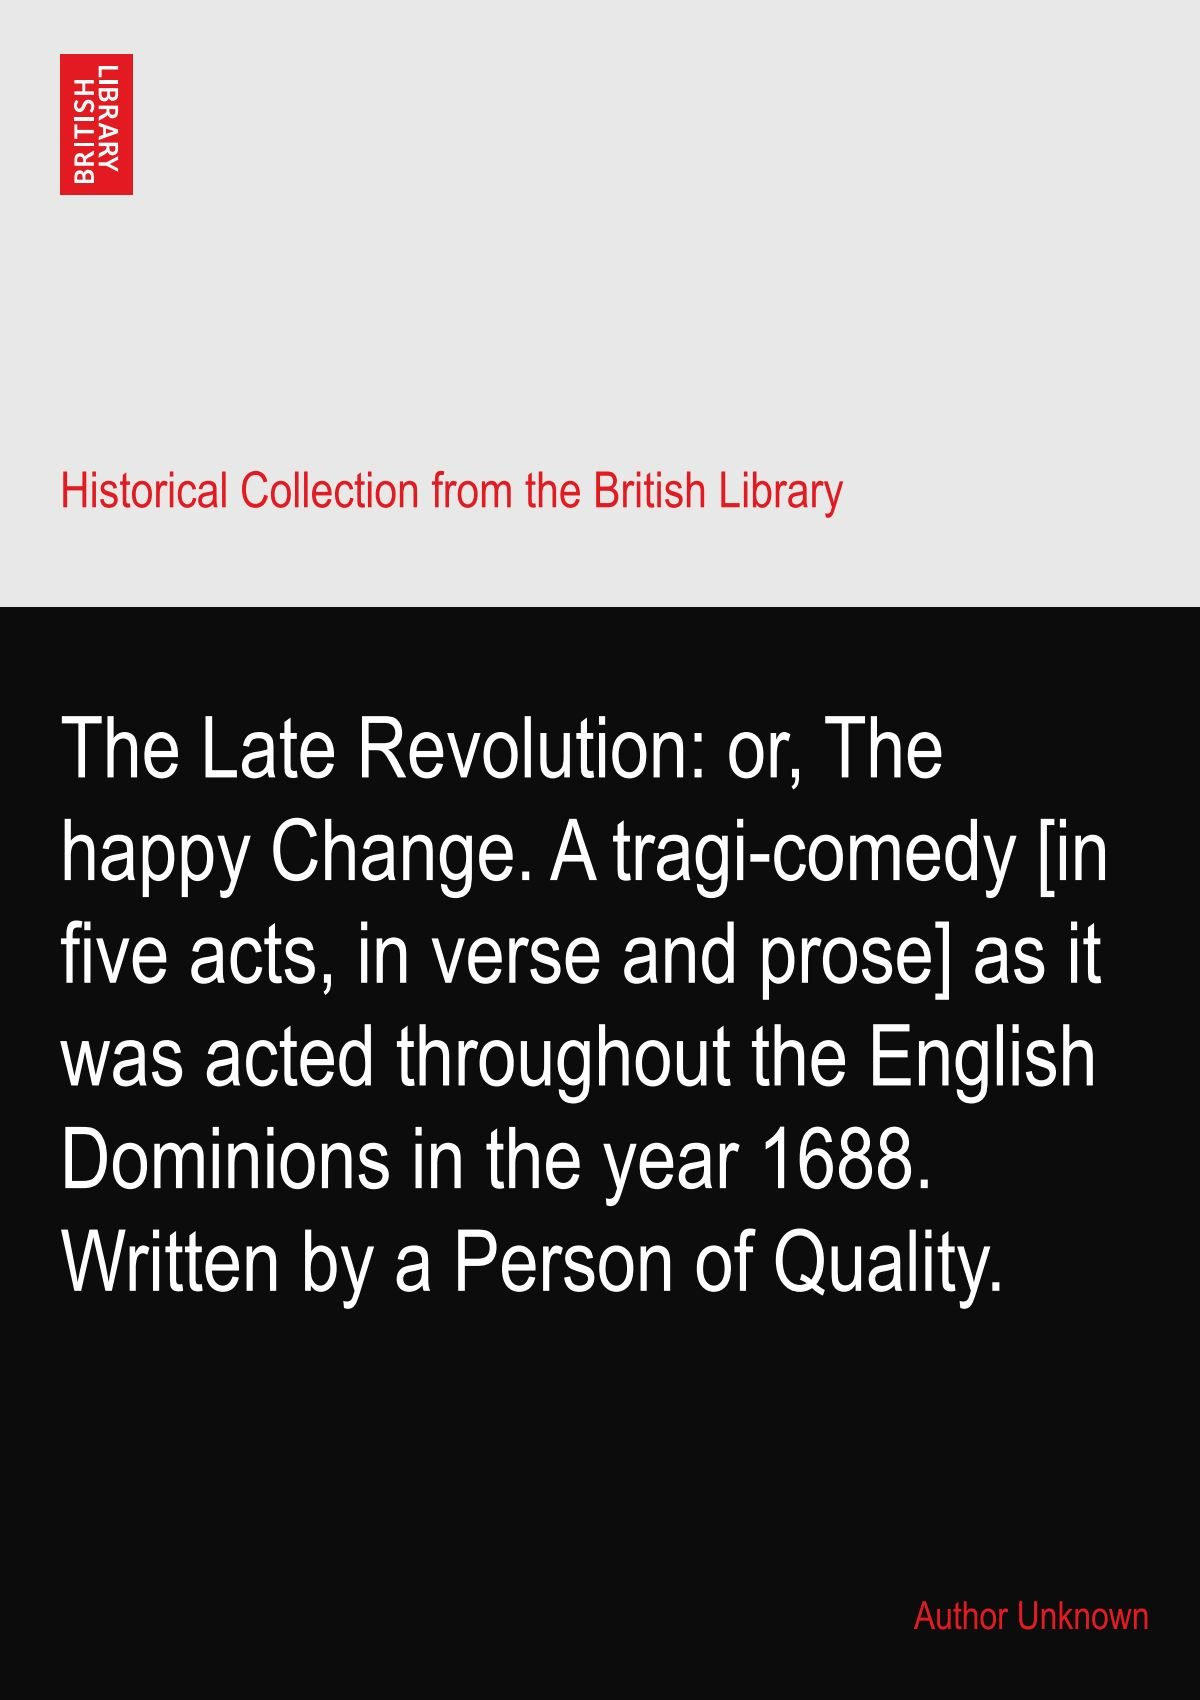 The Late Revolution: or, The happy Change. A tragi-comedy [in five acts, in verse and prose] as it was acted throughout the English Dominions in the year 1688. Written by a Person of Quality. PDF